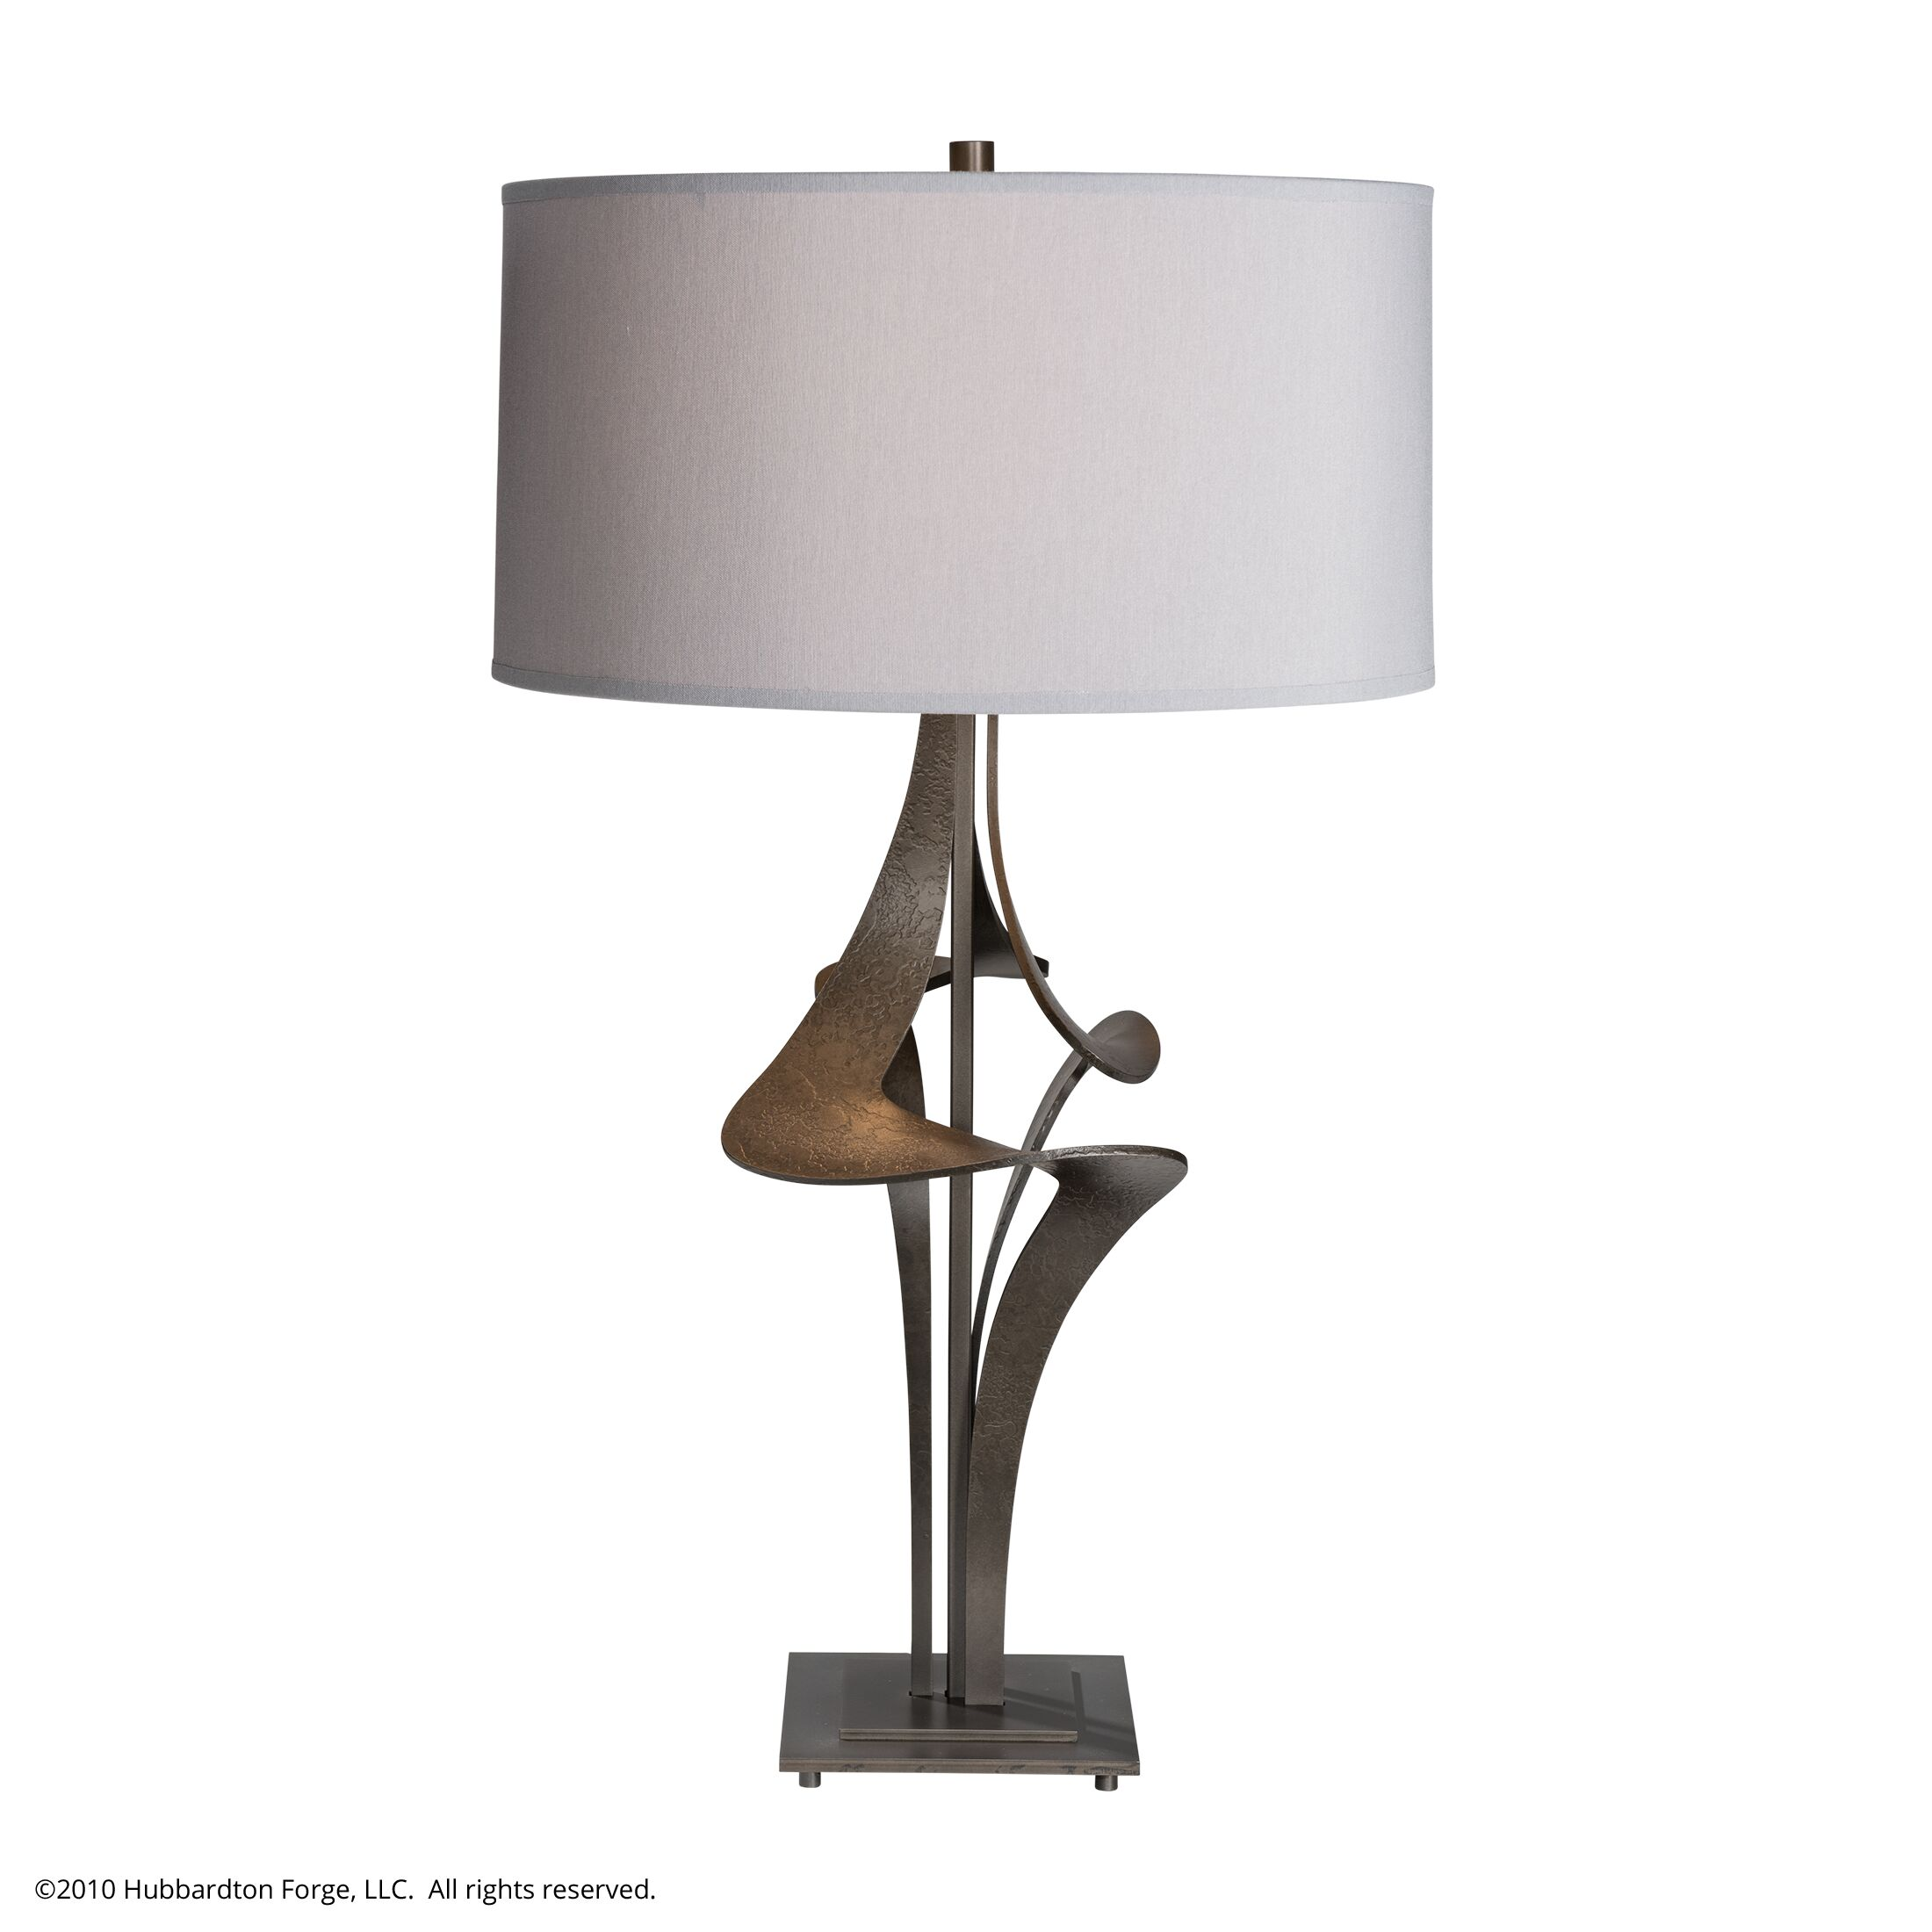 Antasia Table Lamp Hubbardton Forge